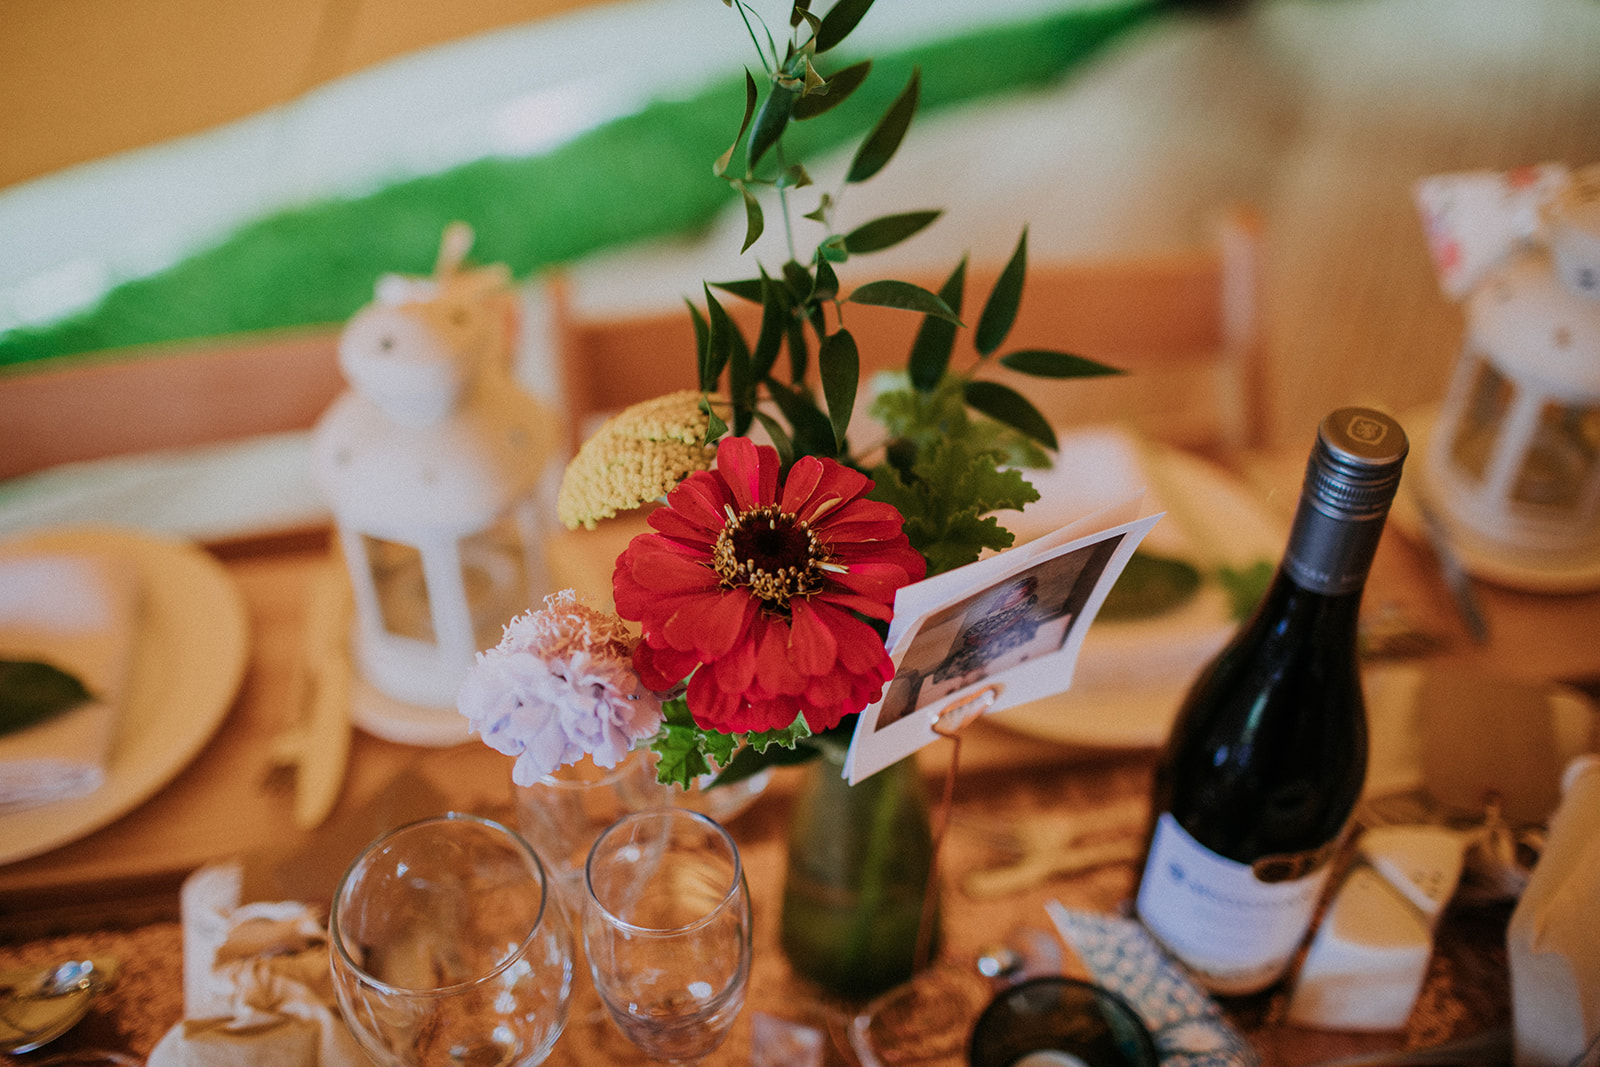 Table details with flowers and photos for cattows farm wedding with sami tipi